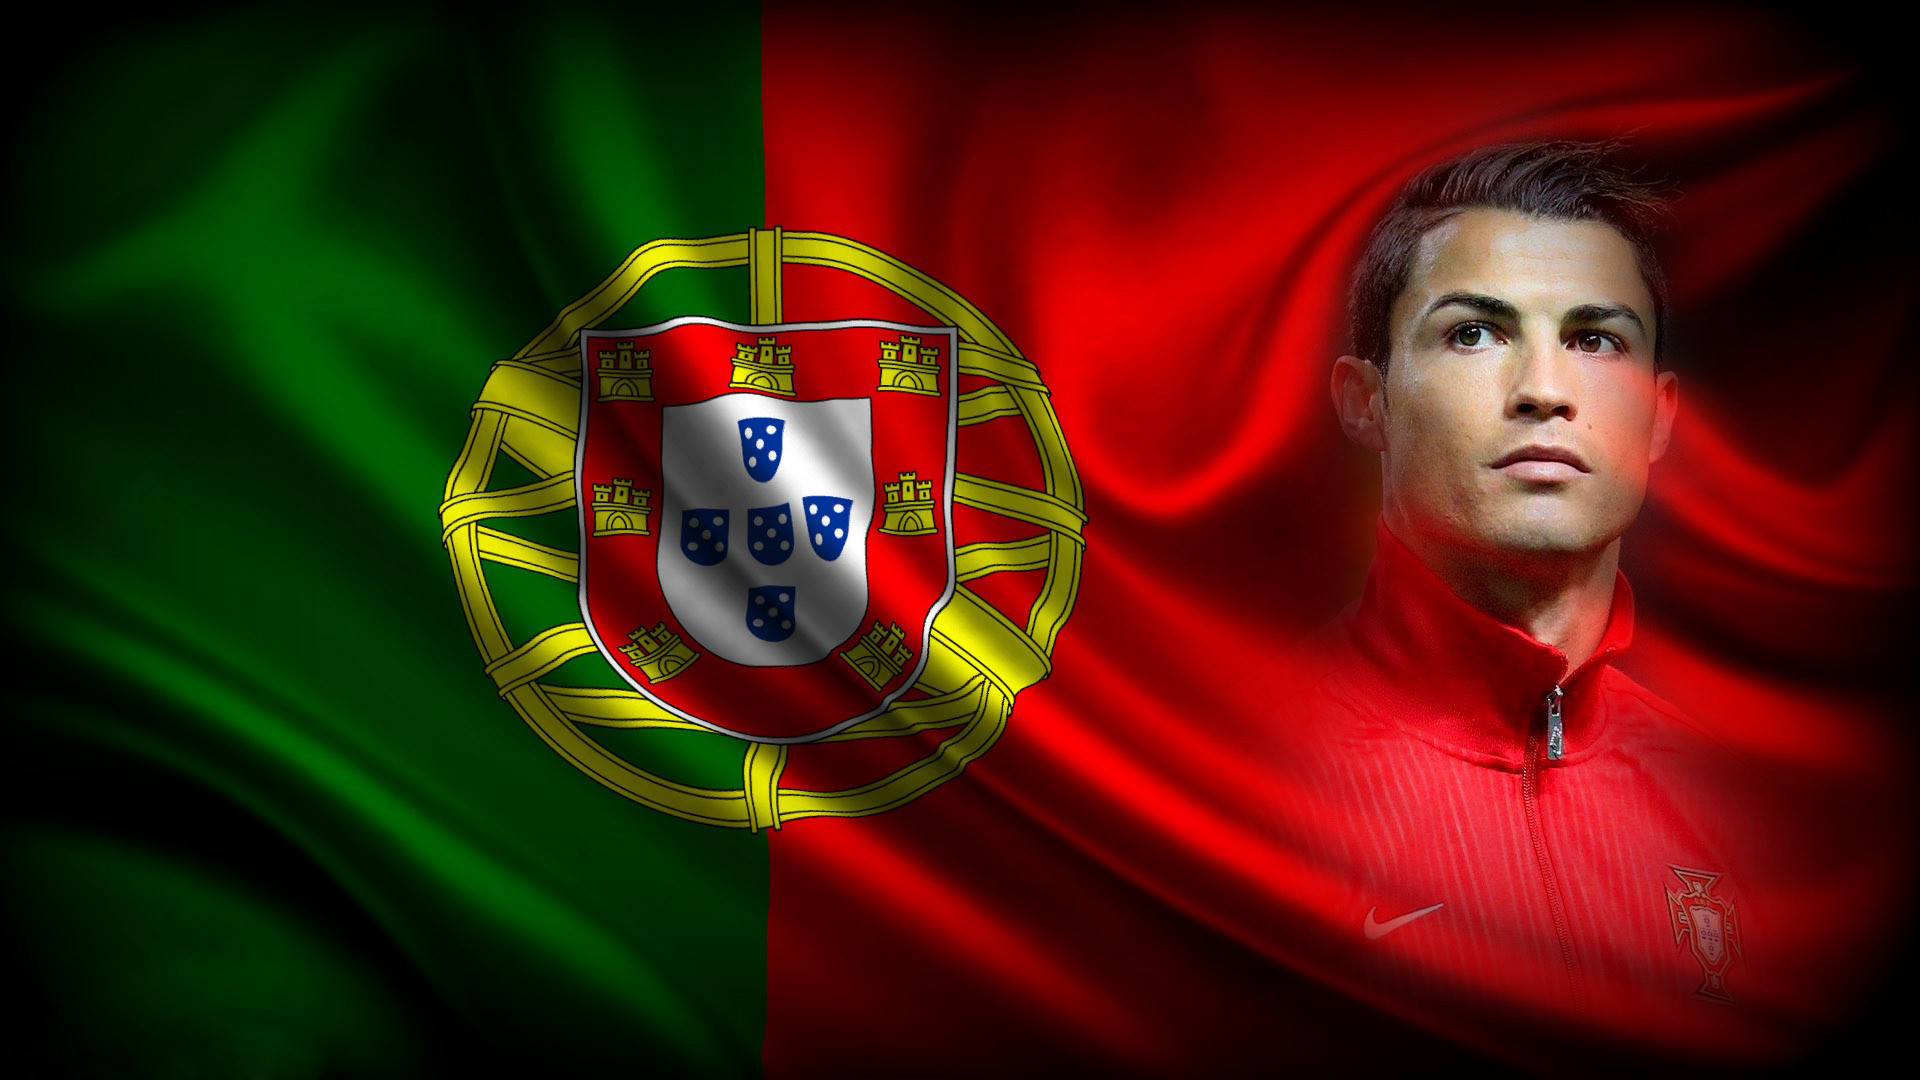 1920x1080 Sports cristiano ronaldo flag soccer portugal football cool wallpapers.